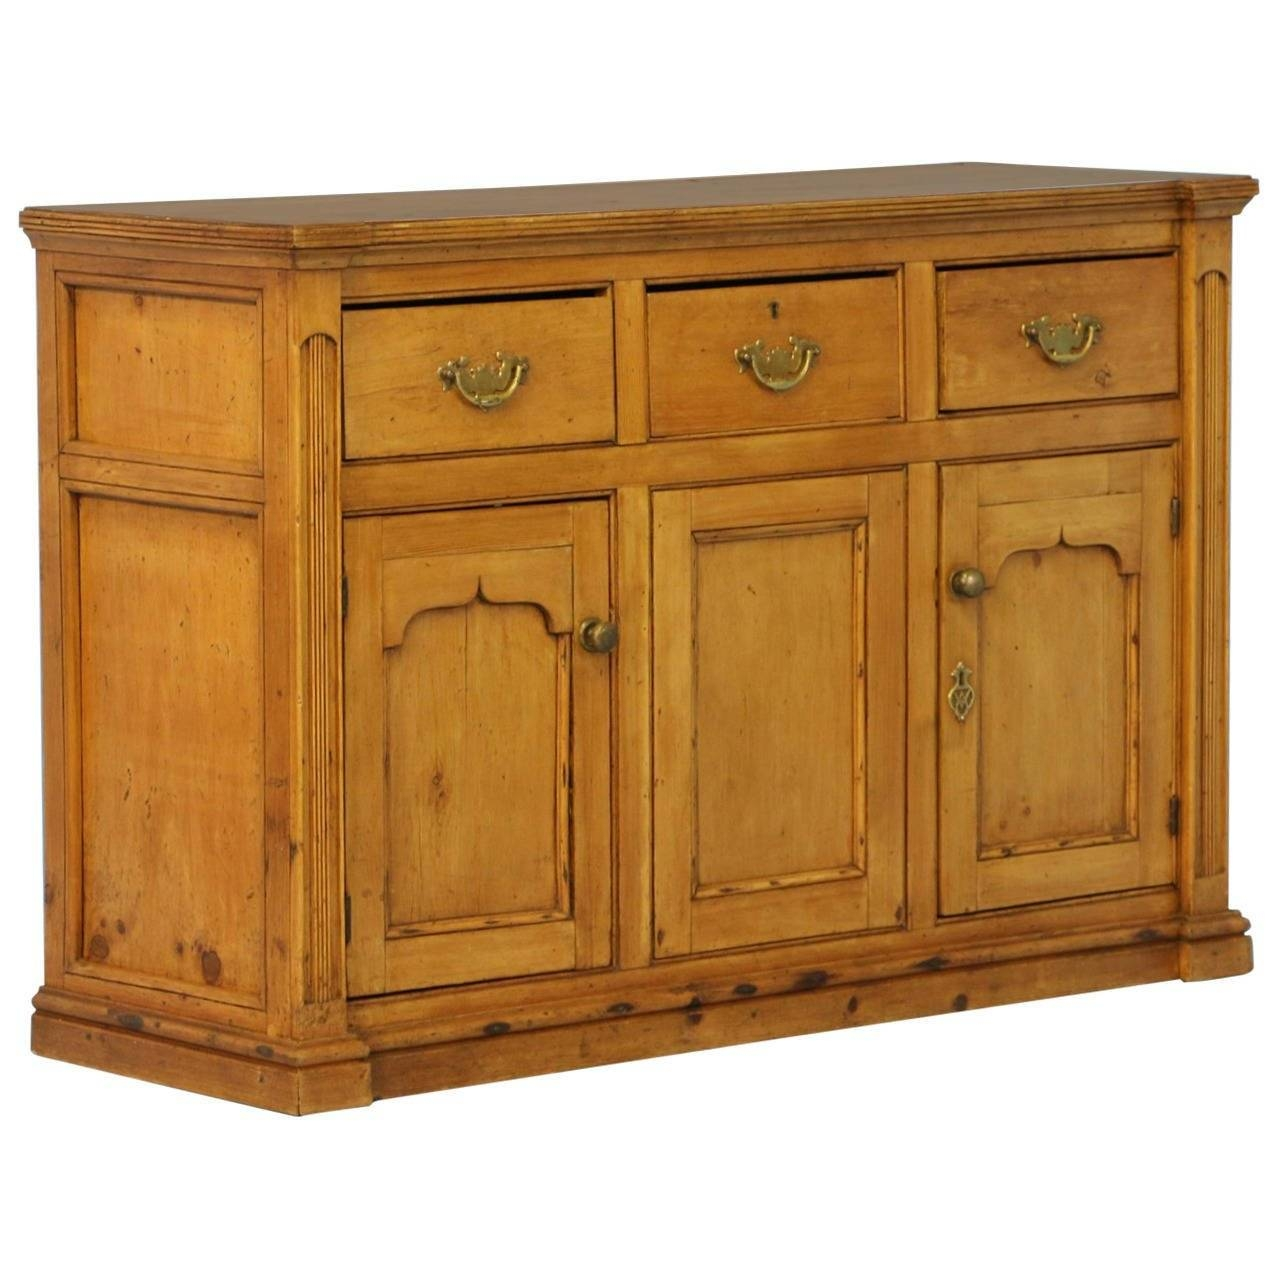 Antique Pine Buffet Sideboard, England, Circa 1850 At 1Stdibs within Chinese Sideboards (Image 5 of 30)